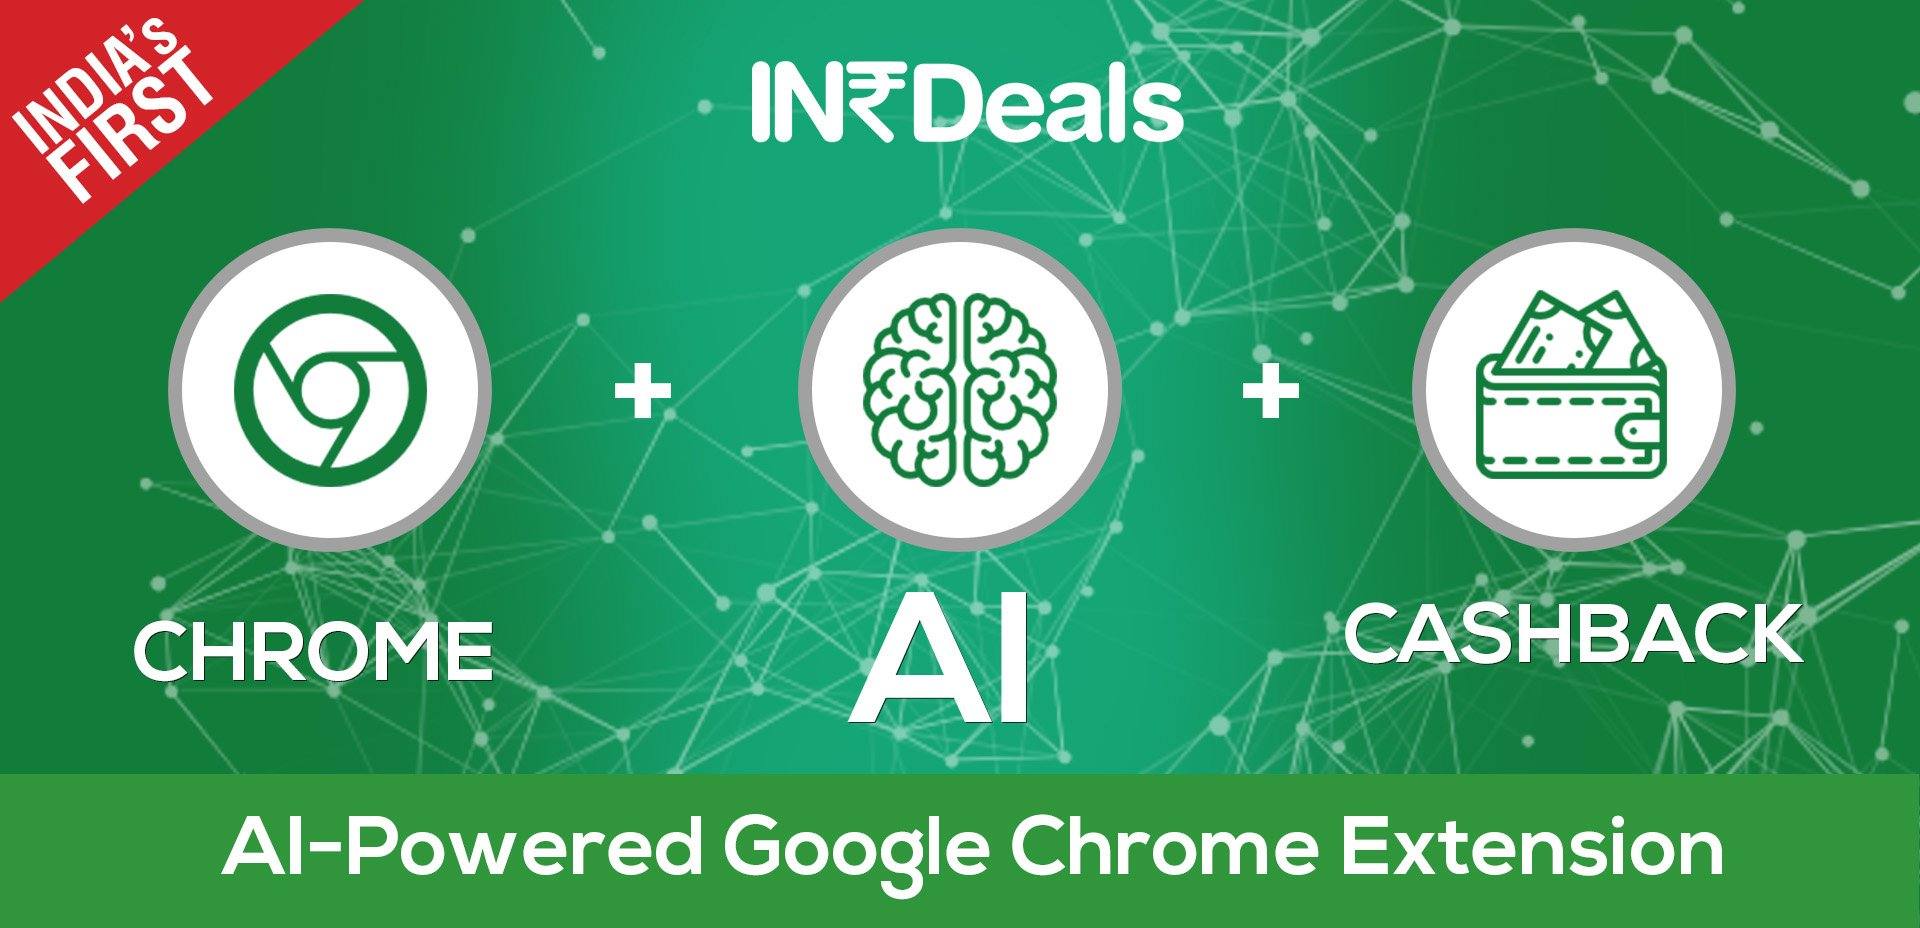 indias first, ai based, chrome extension